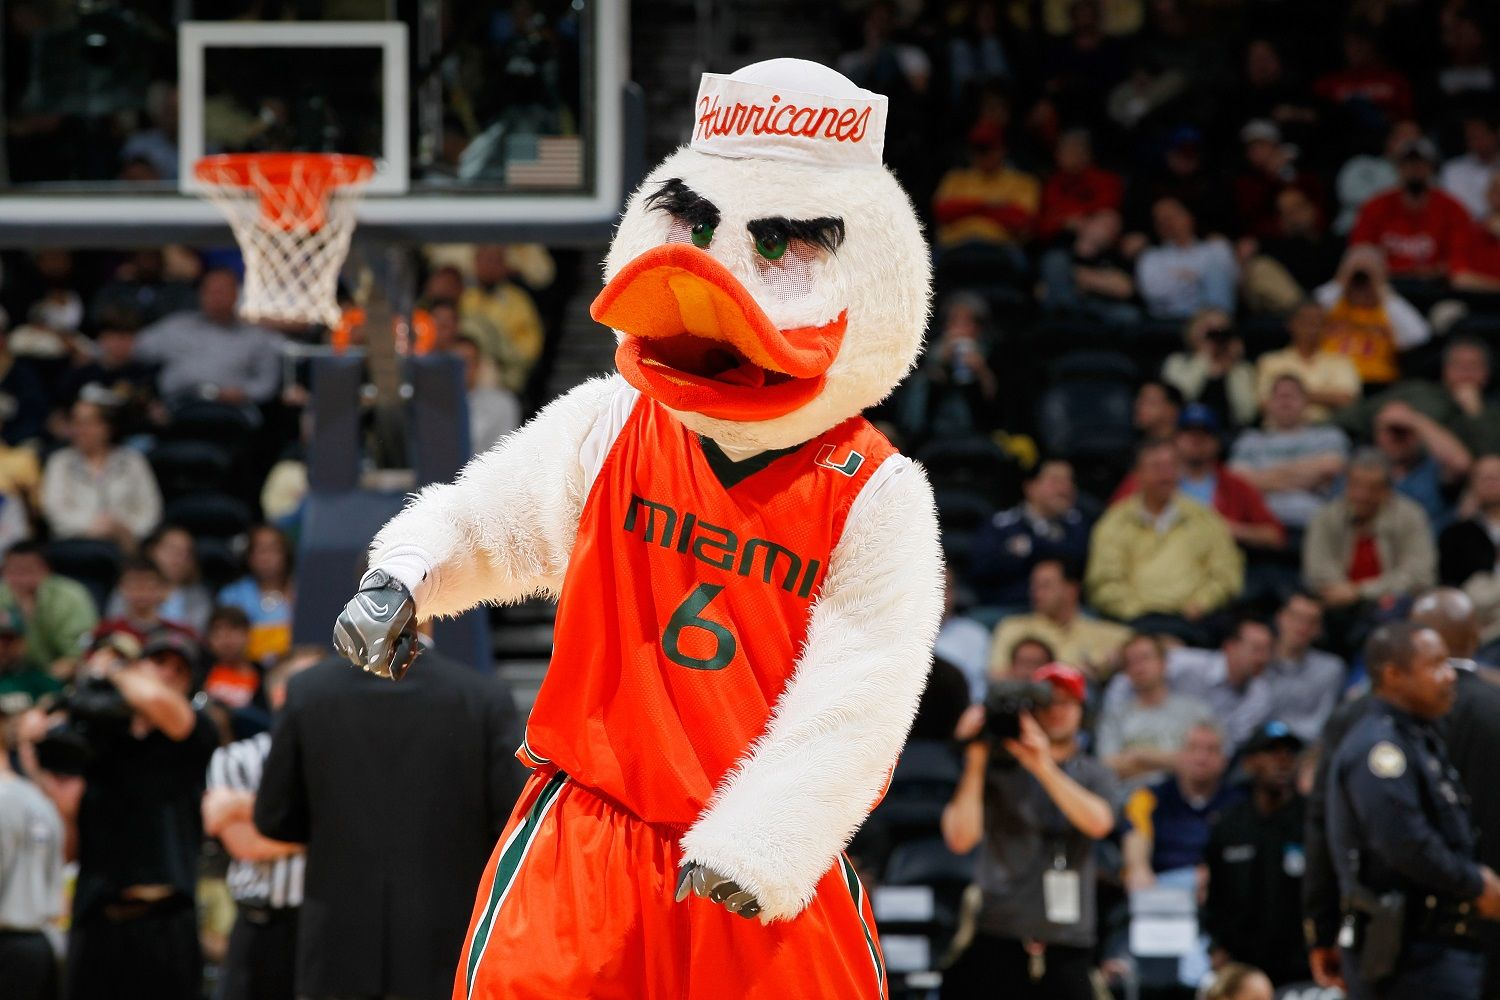 ATLANTA, GA - MARCH 08:  Sebastian the Ibis, the Miami Hurricanes mascot, gestures during their first round game of 2012 ACC Men's Basketball Conferene Tournament against the Georgia Tech Yellow Jackets at Philips Arena on March 8, 2012 in Atlanta, Georgia.  (Photo by Kevin C. Cox/Getty Images)